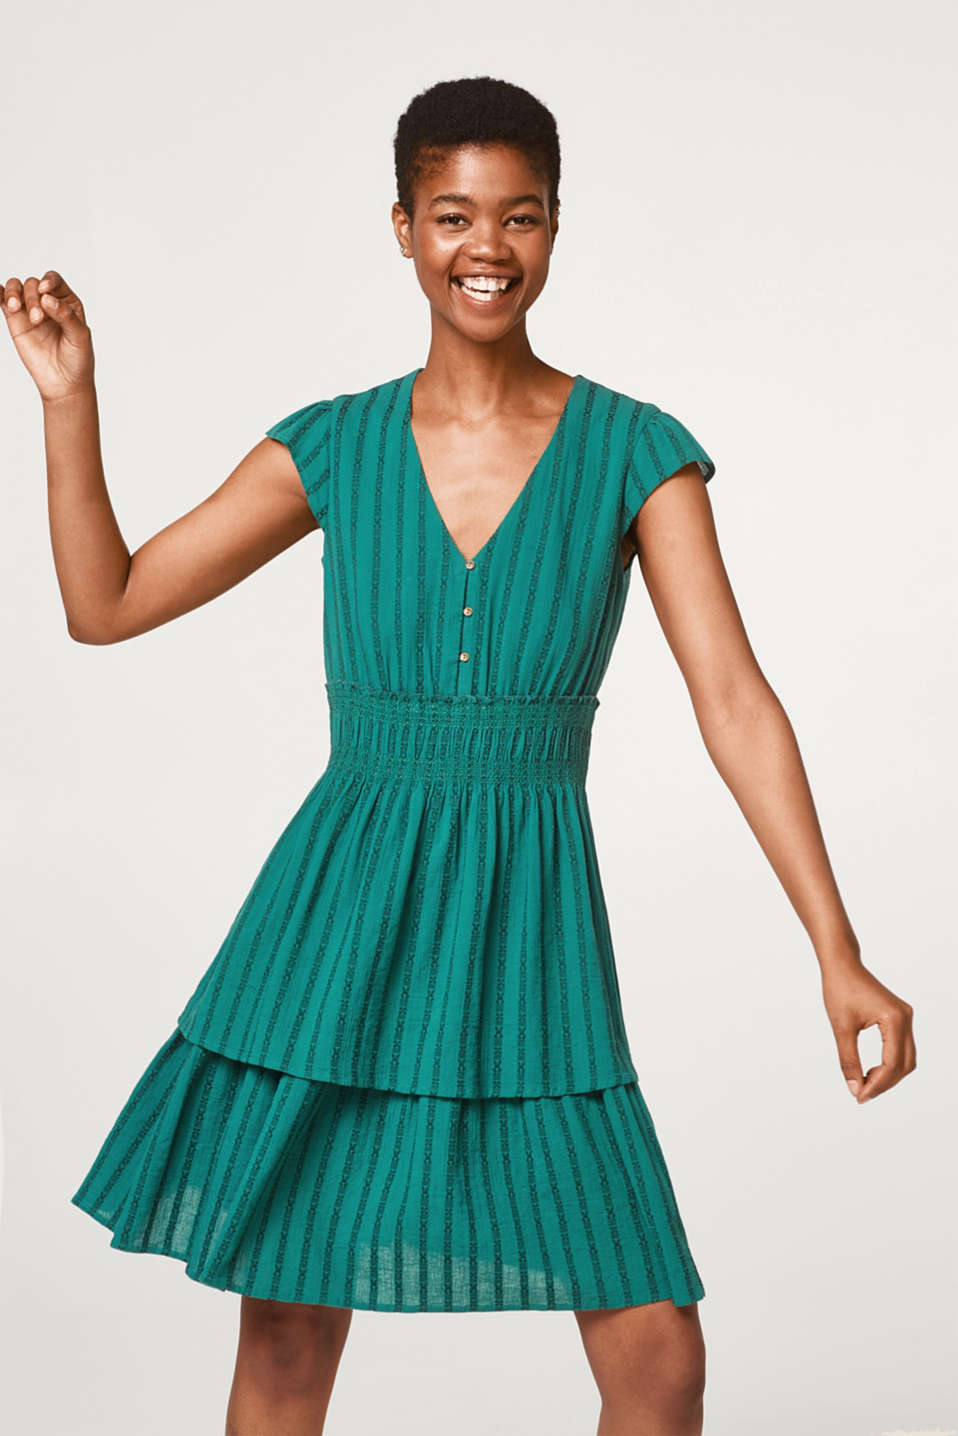 Esprit - Dress with textured jacquard stripes